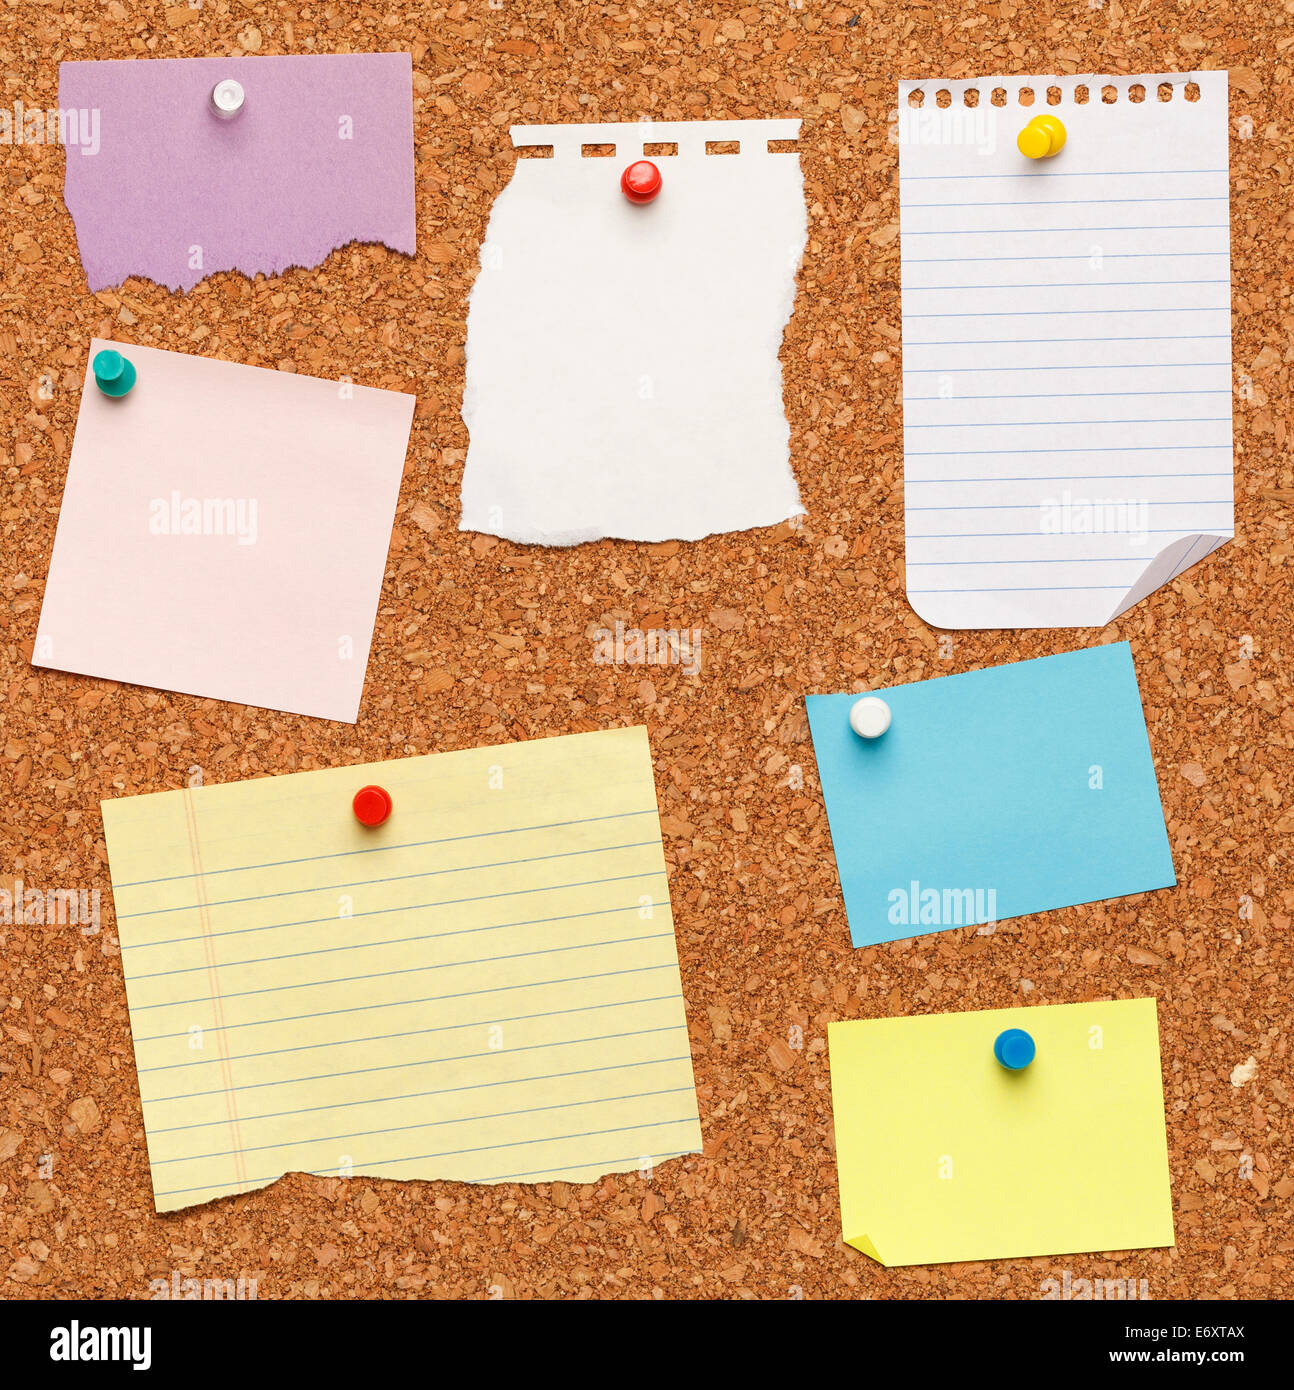 Different papers tacked on cork board. - Stock Image